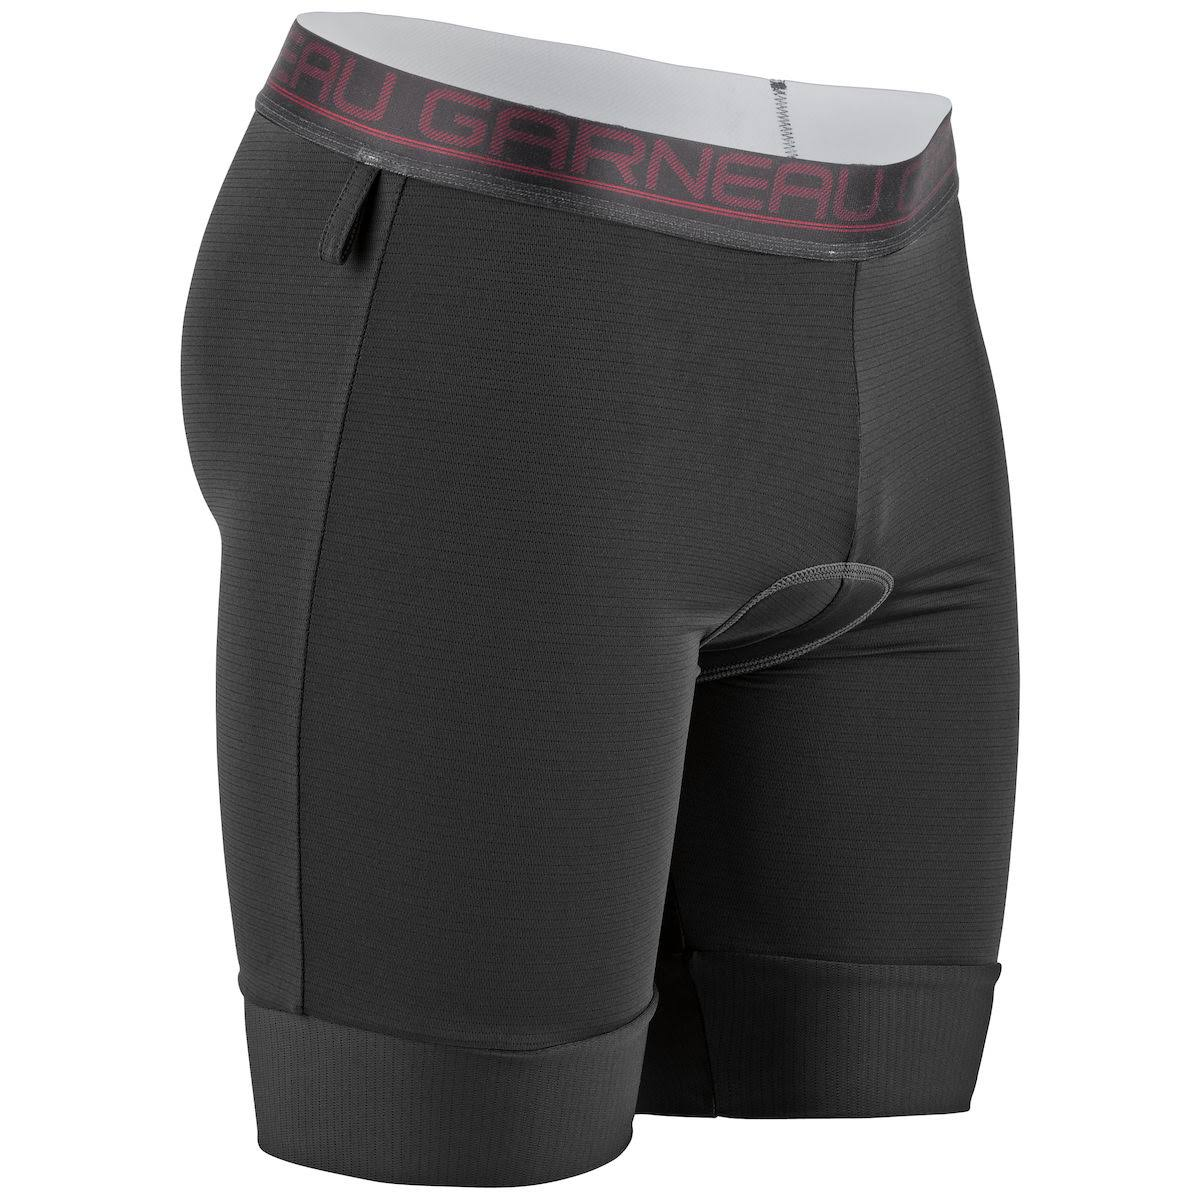 Louis Garneau Men's Sport Inner Cycling Liner - Black and Red, X-Large